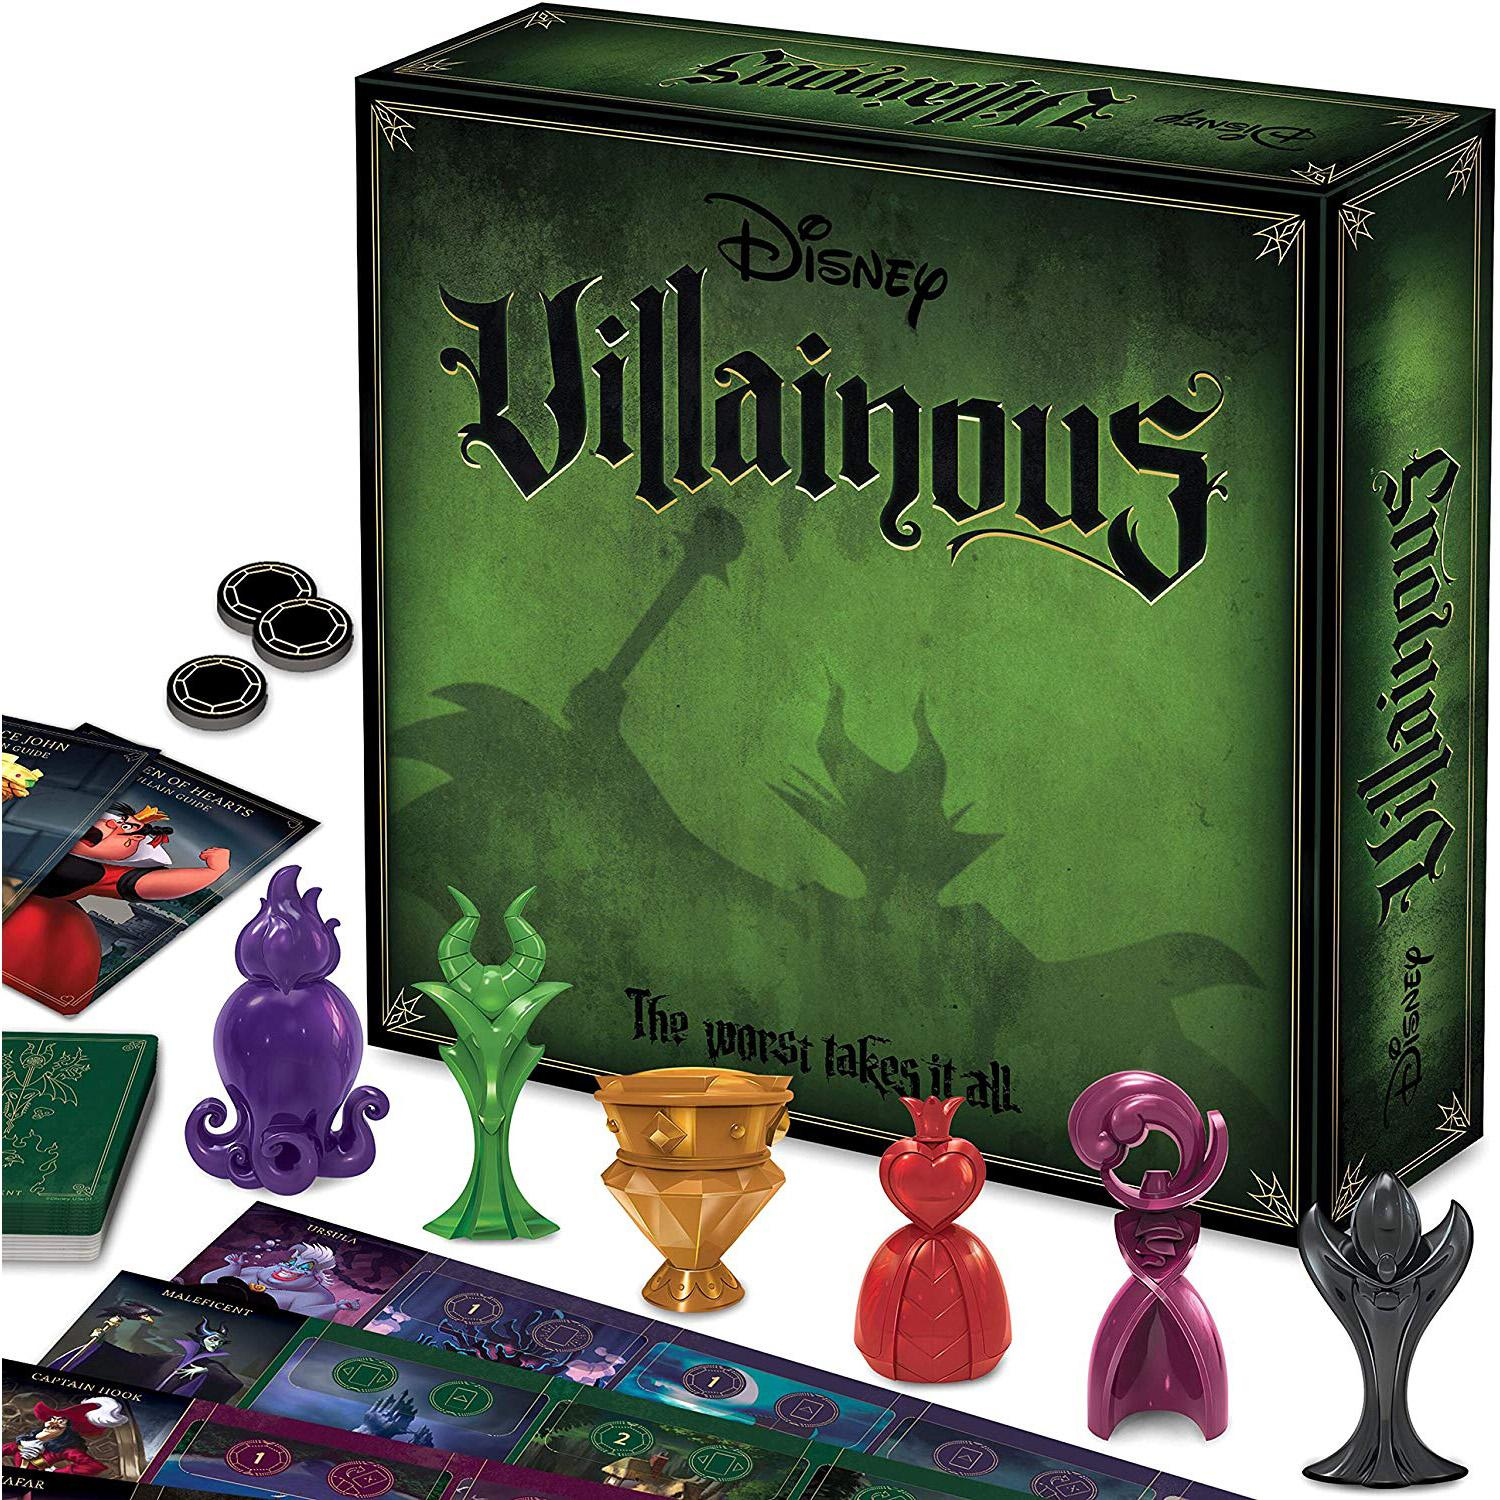 Ravensburger Disney Villainous Strategy Board Game for $26.24 Shipped